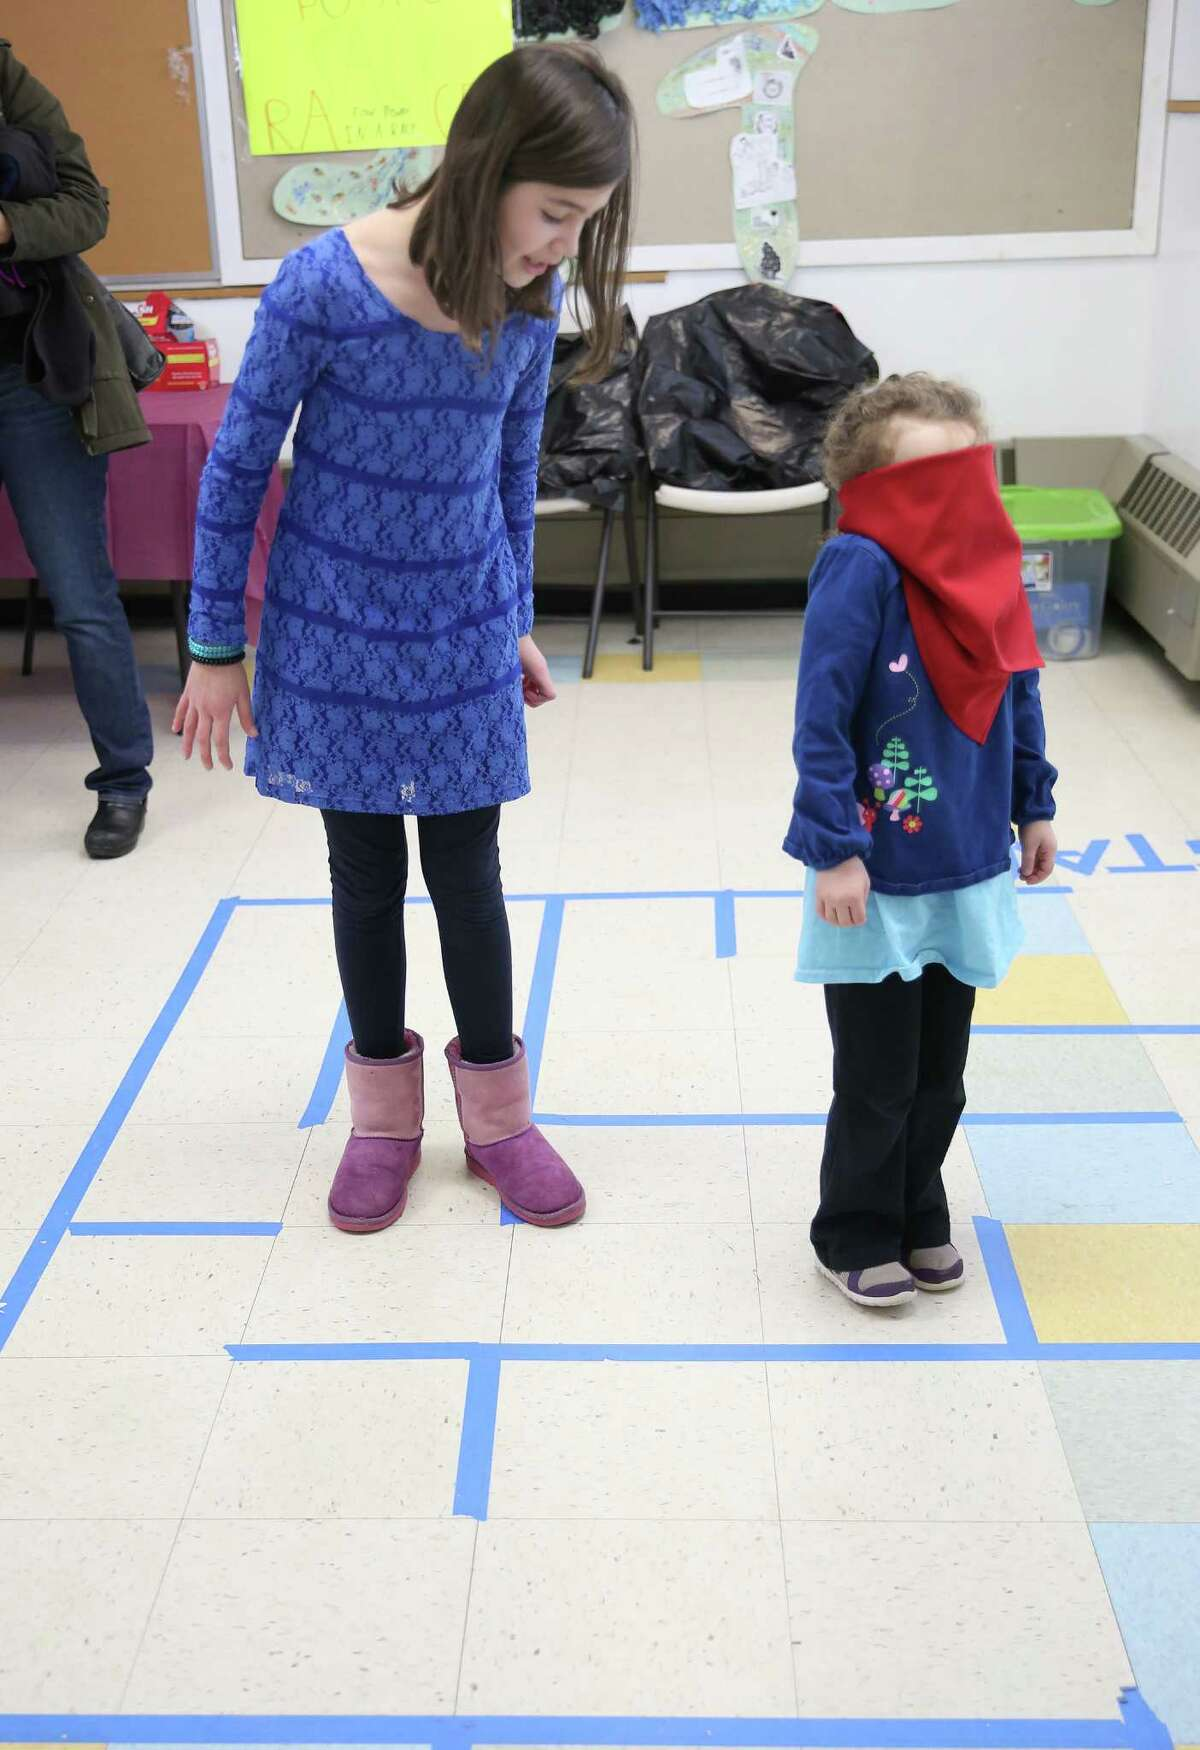 Rachel Logue age 10 of Fairfield guides Macey Greene age 5 also of Fairfield through a blind folded maze during Sunday's Pre-Passover family fun at Model Matzah event at Chabad of Fairfield